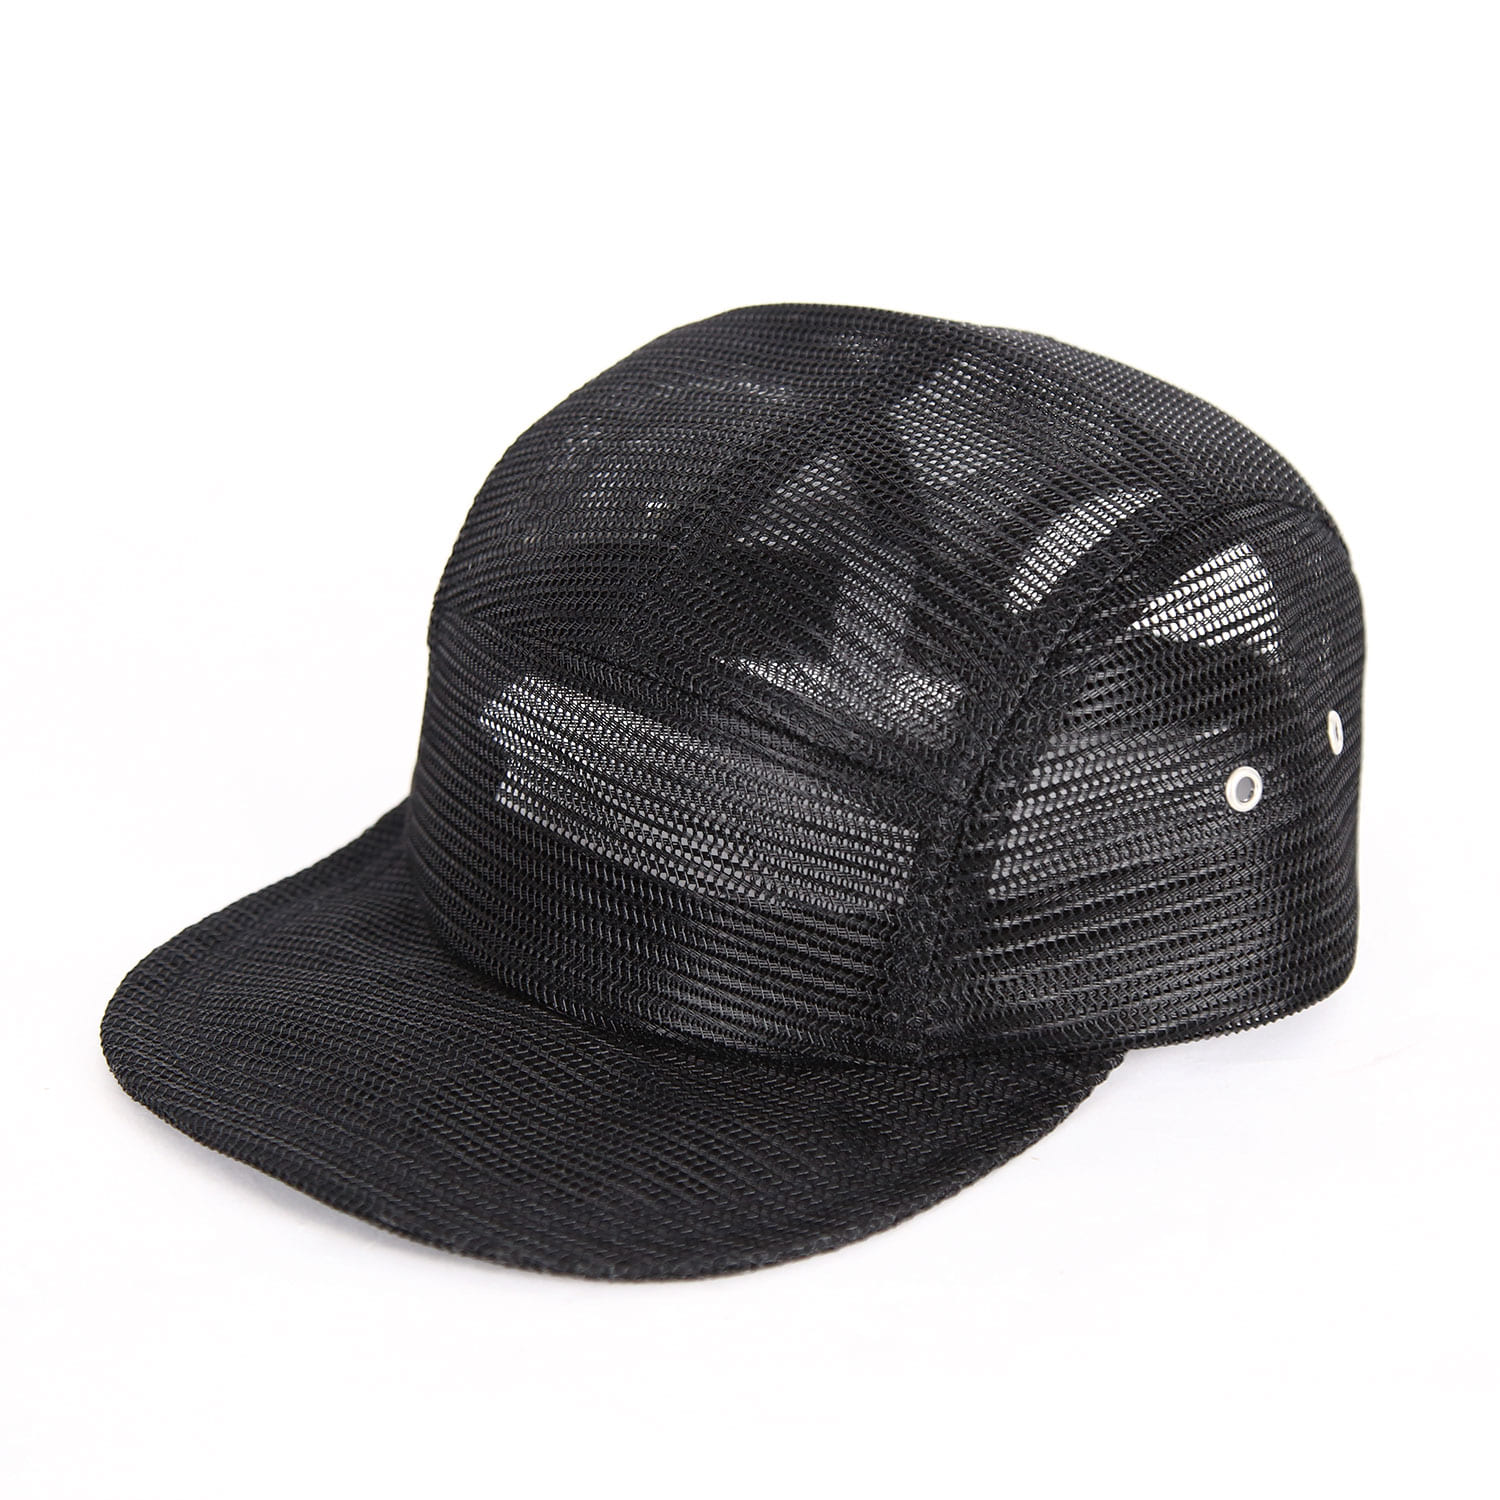 Ass Cap - Black / Black